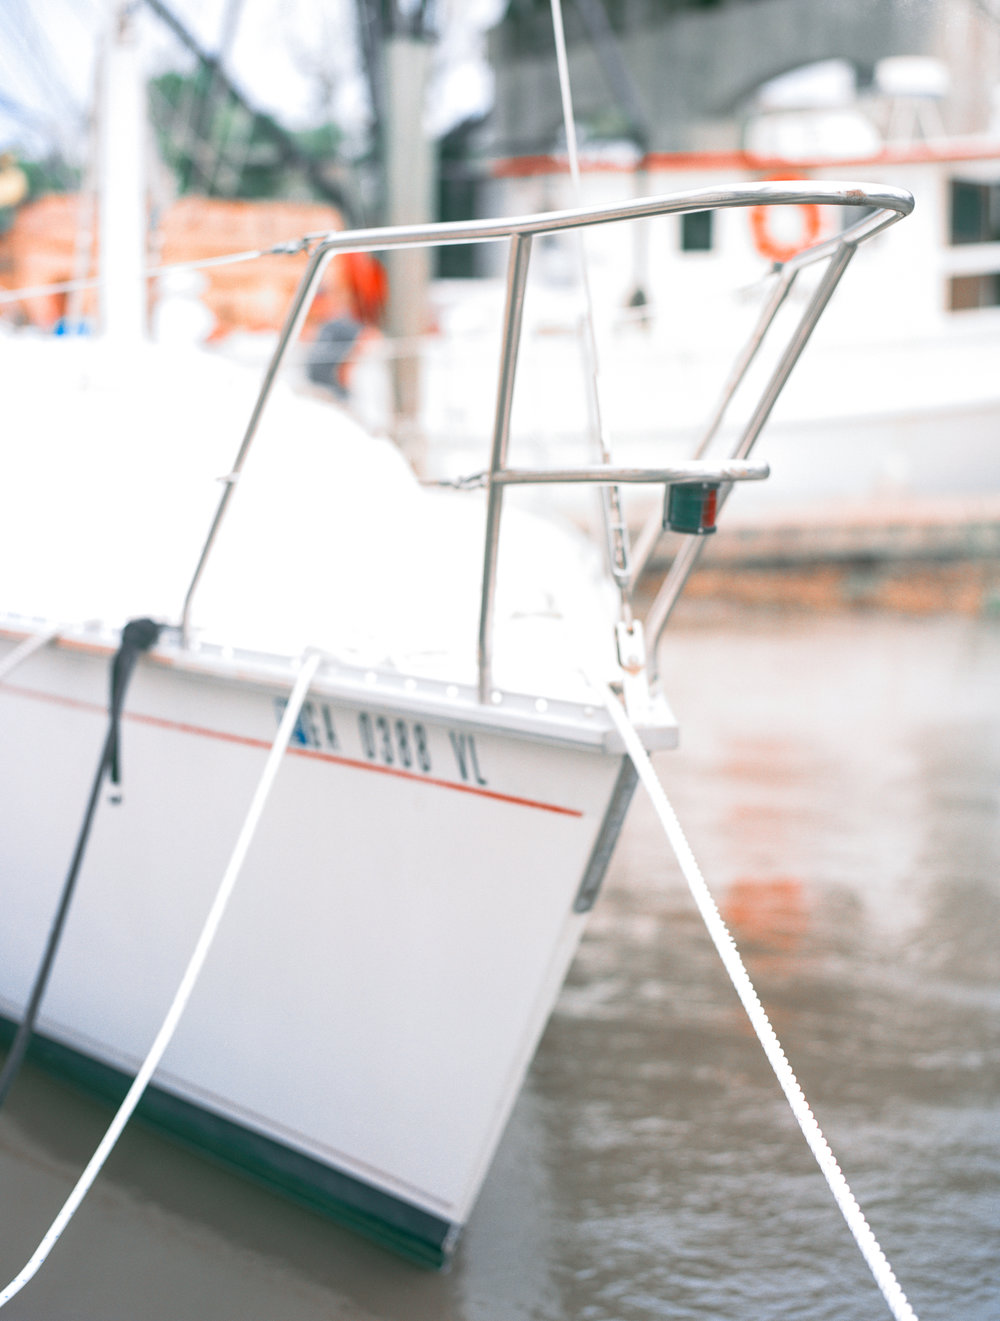 The event is held for the shrimping industry but leisure boats participate as well